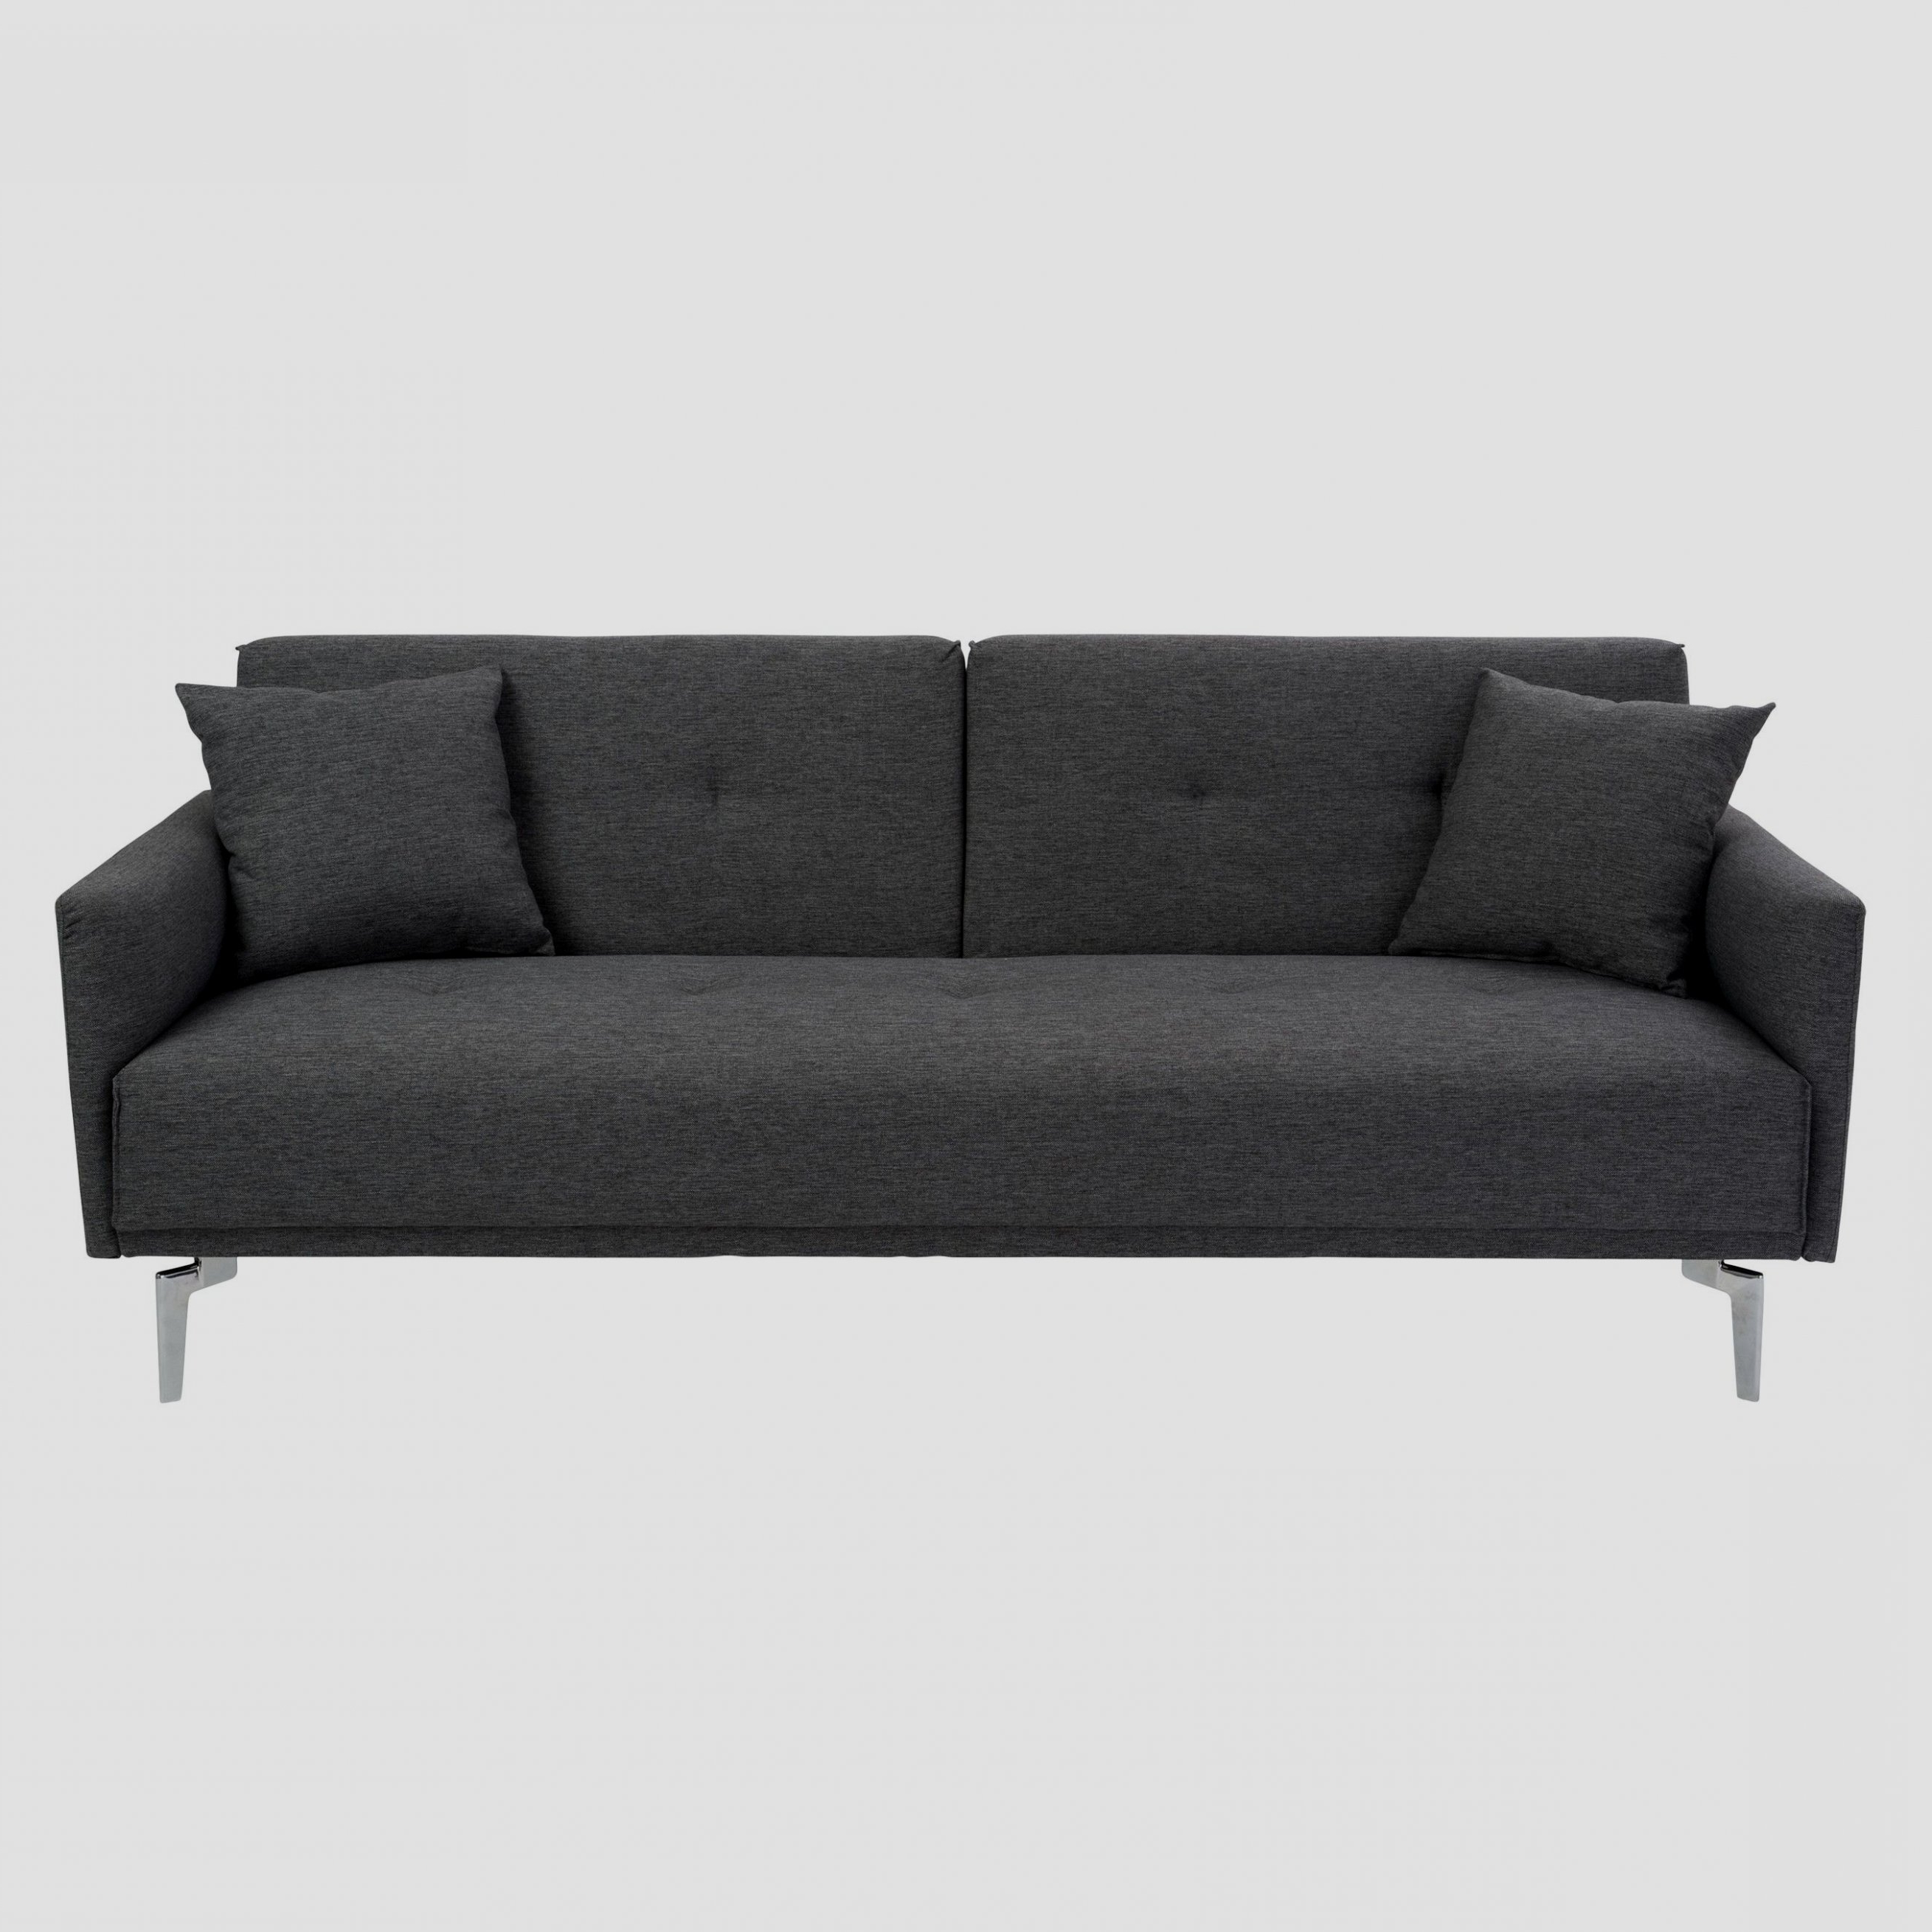 Sofa Curvo Tqd3 sofa Curvo Bello Lafau sofa Bed with Armrest Dark Gray